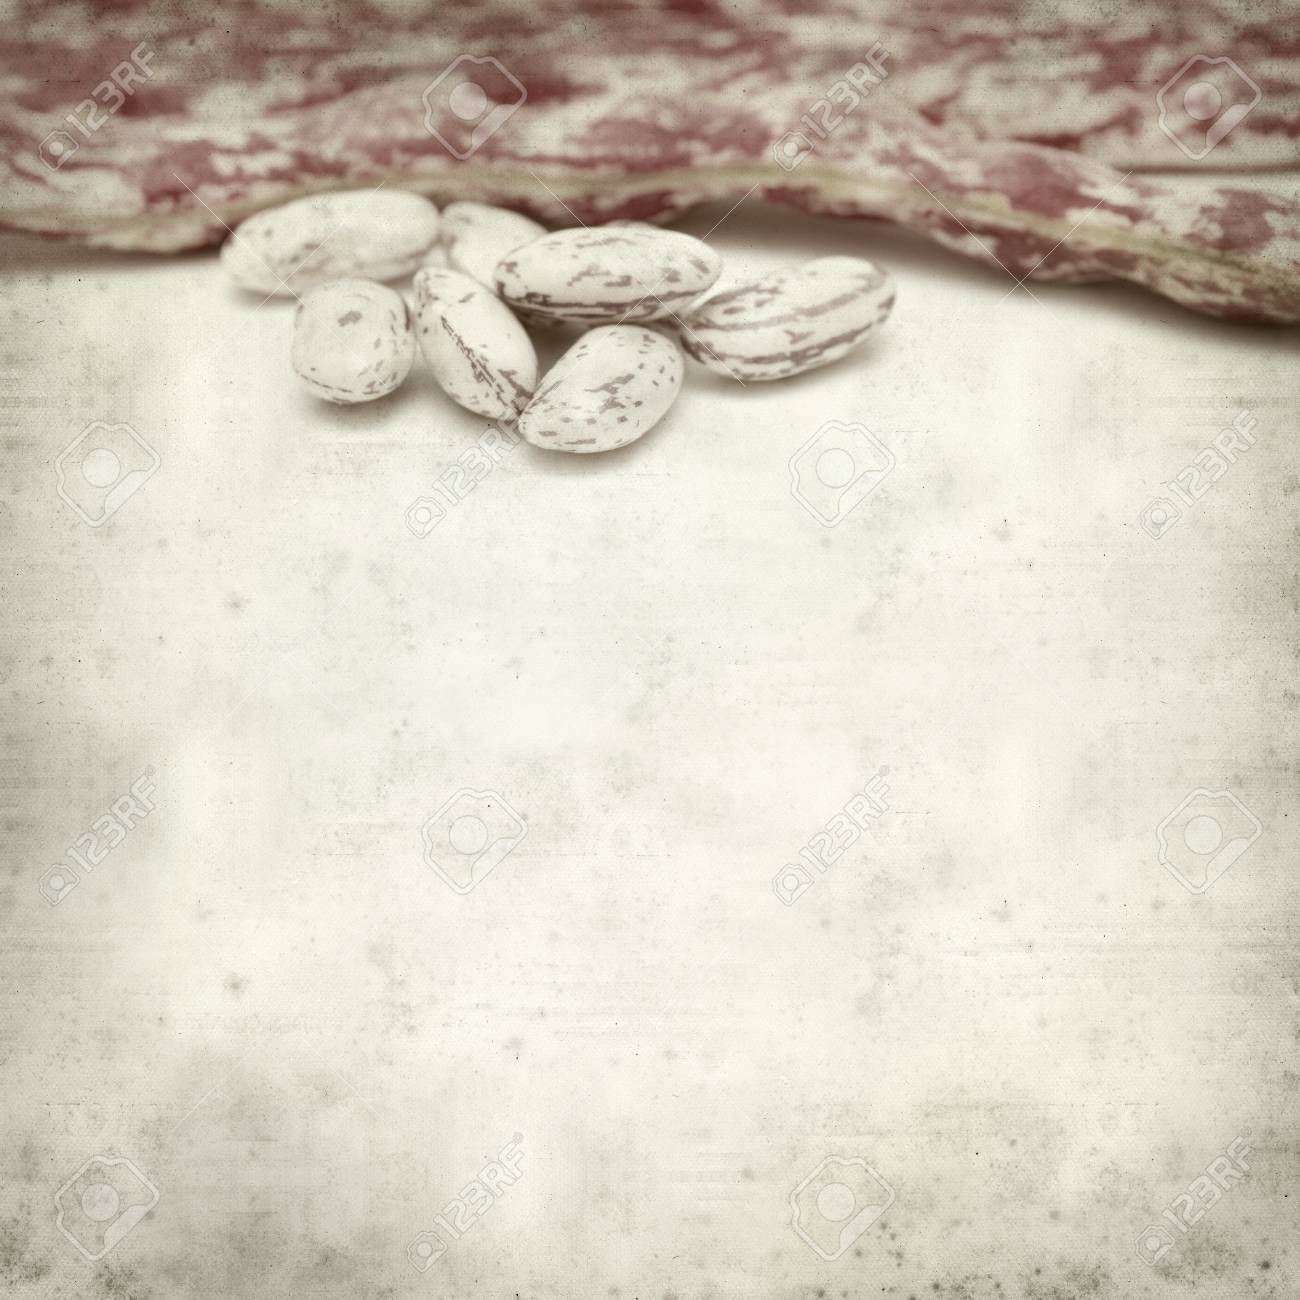 textured old paper background with beans Stock Photo - 29547470